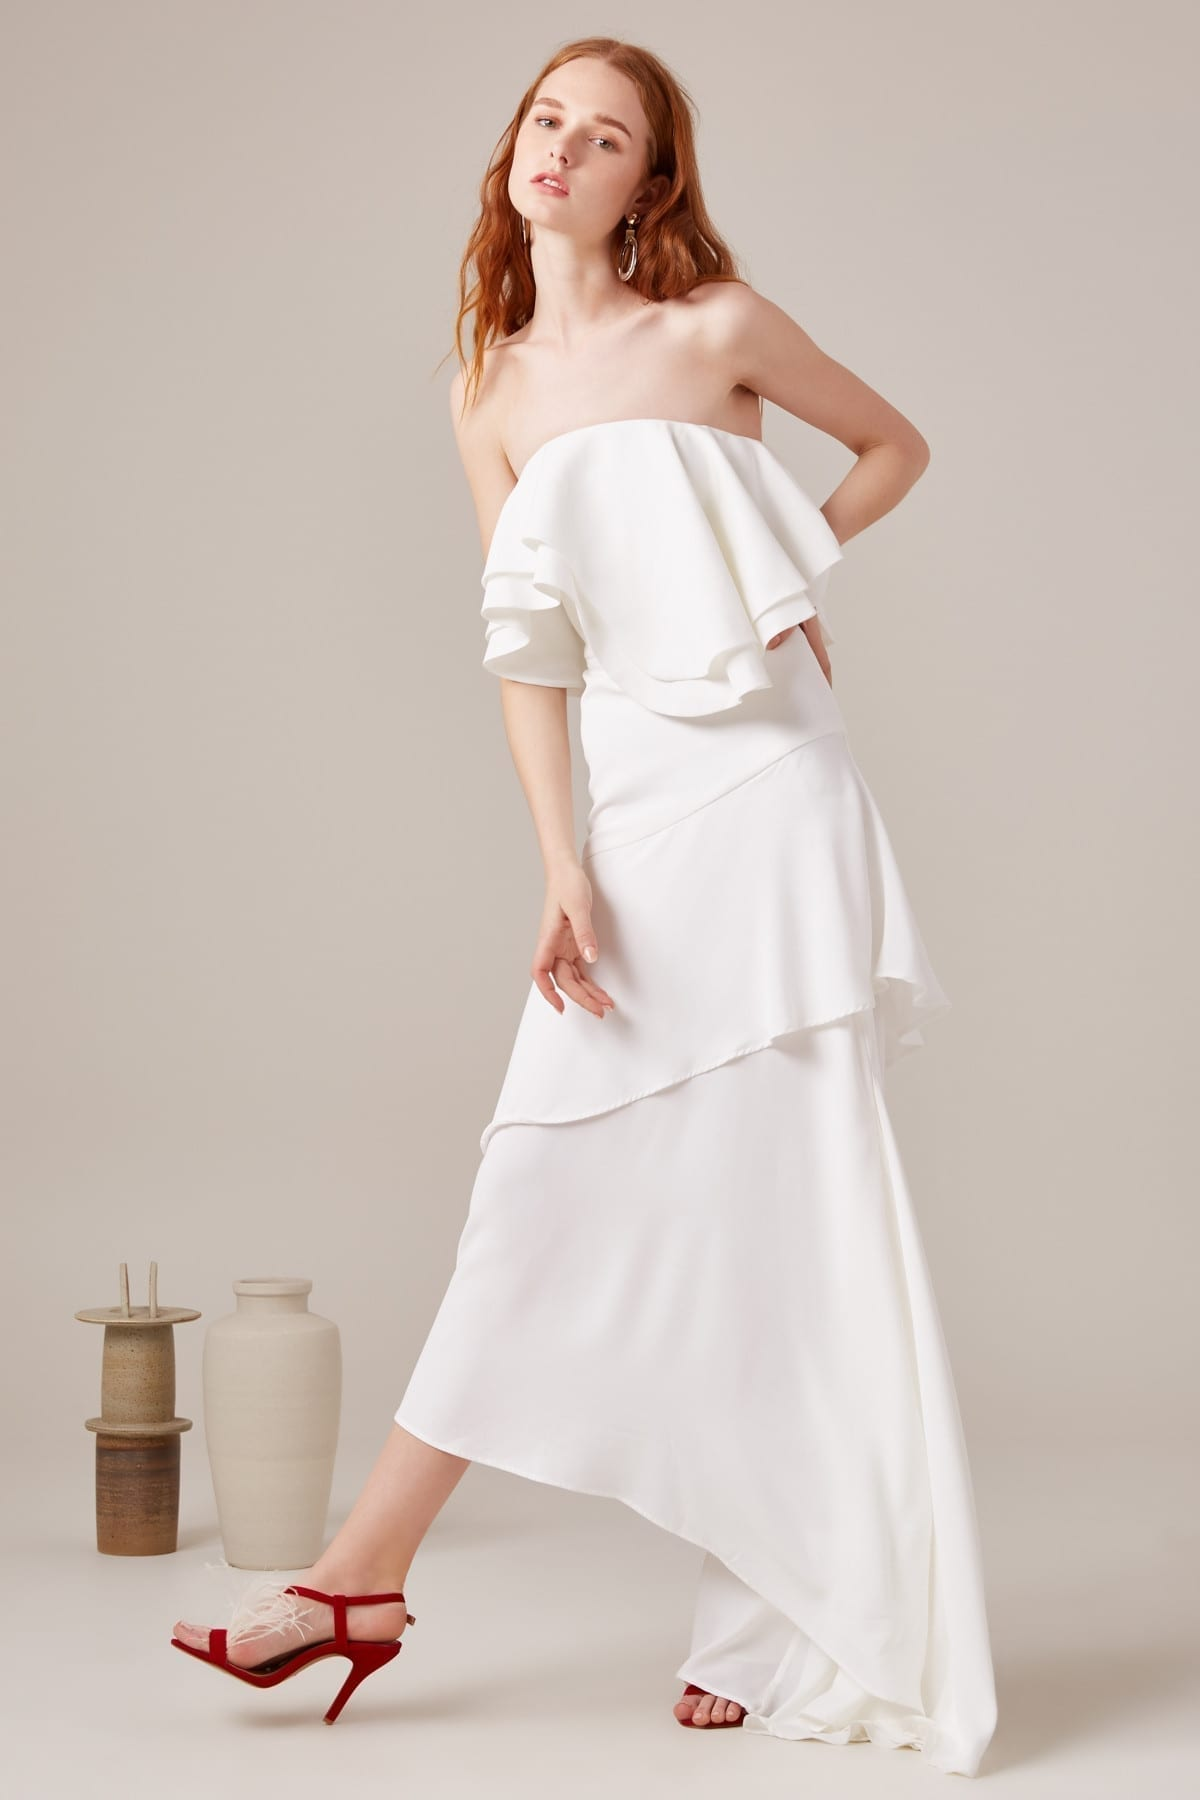 CMEO COLLECTIVE With You Ivory Gown